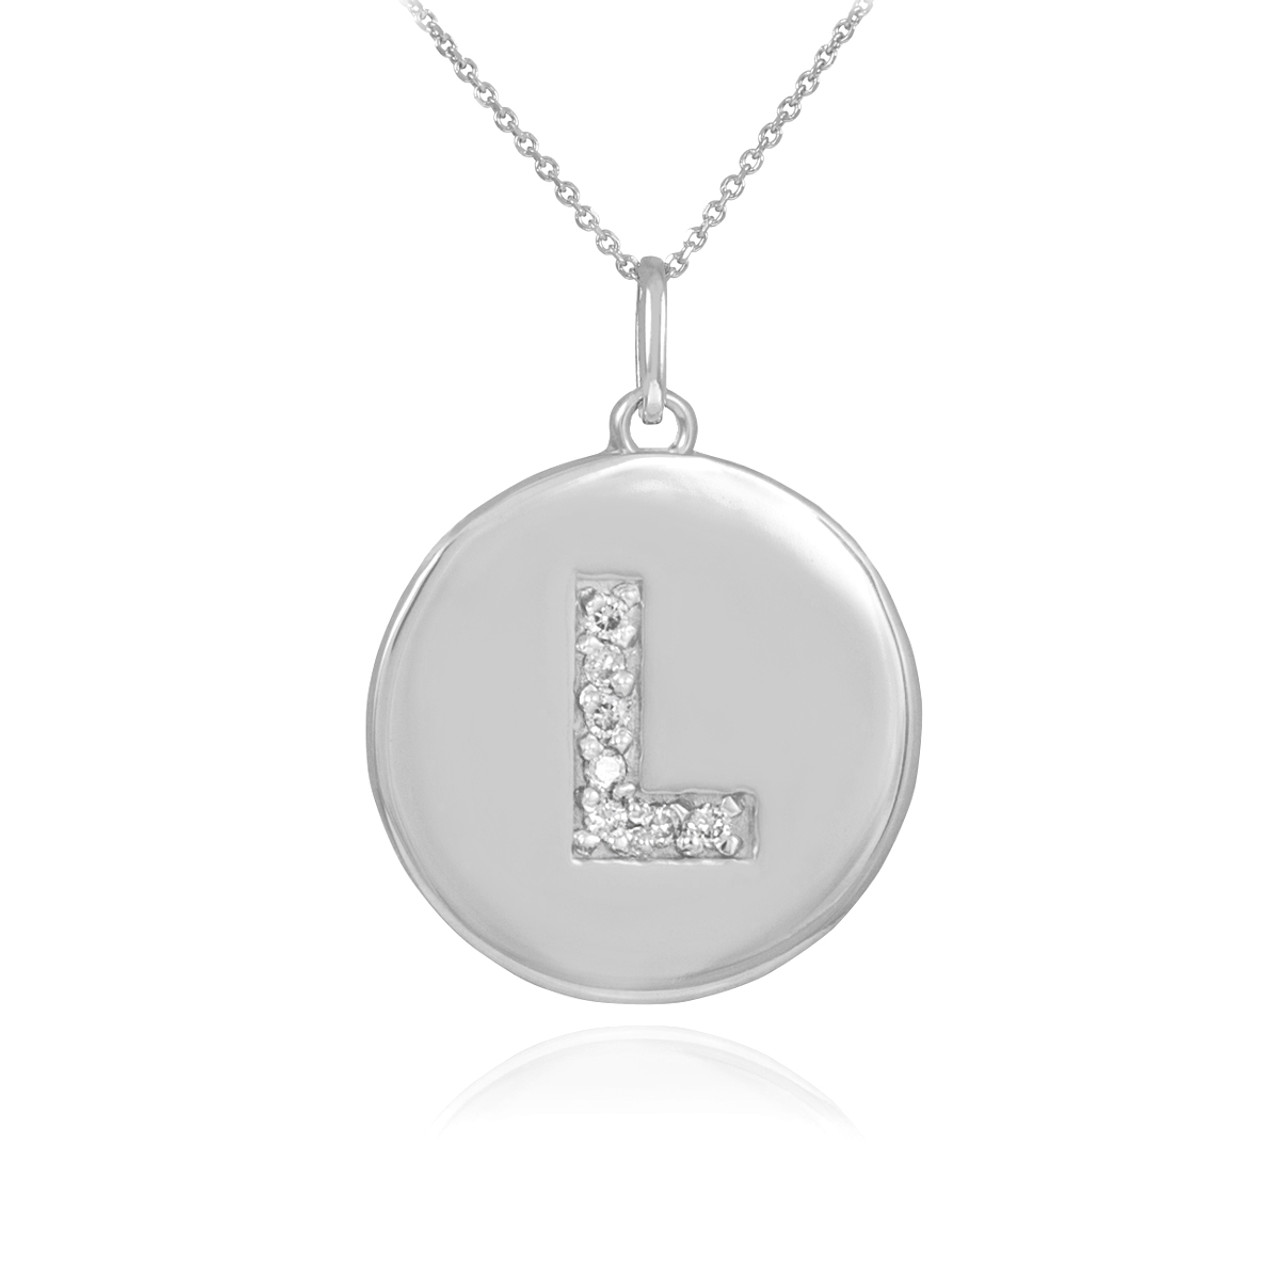 Initial l disc necklace initial l disc pendant white gold letter l disc pendant necklace with diamonds in 10k or 14k white gold mozeypictures Image collections